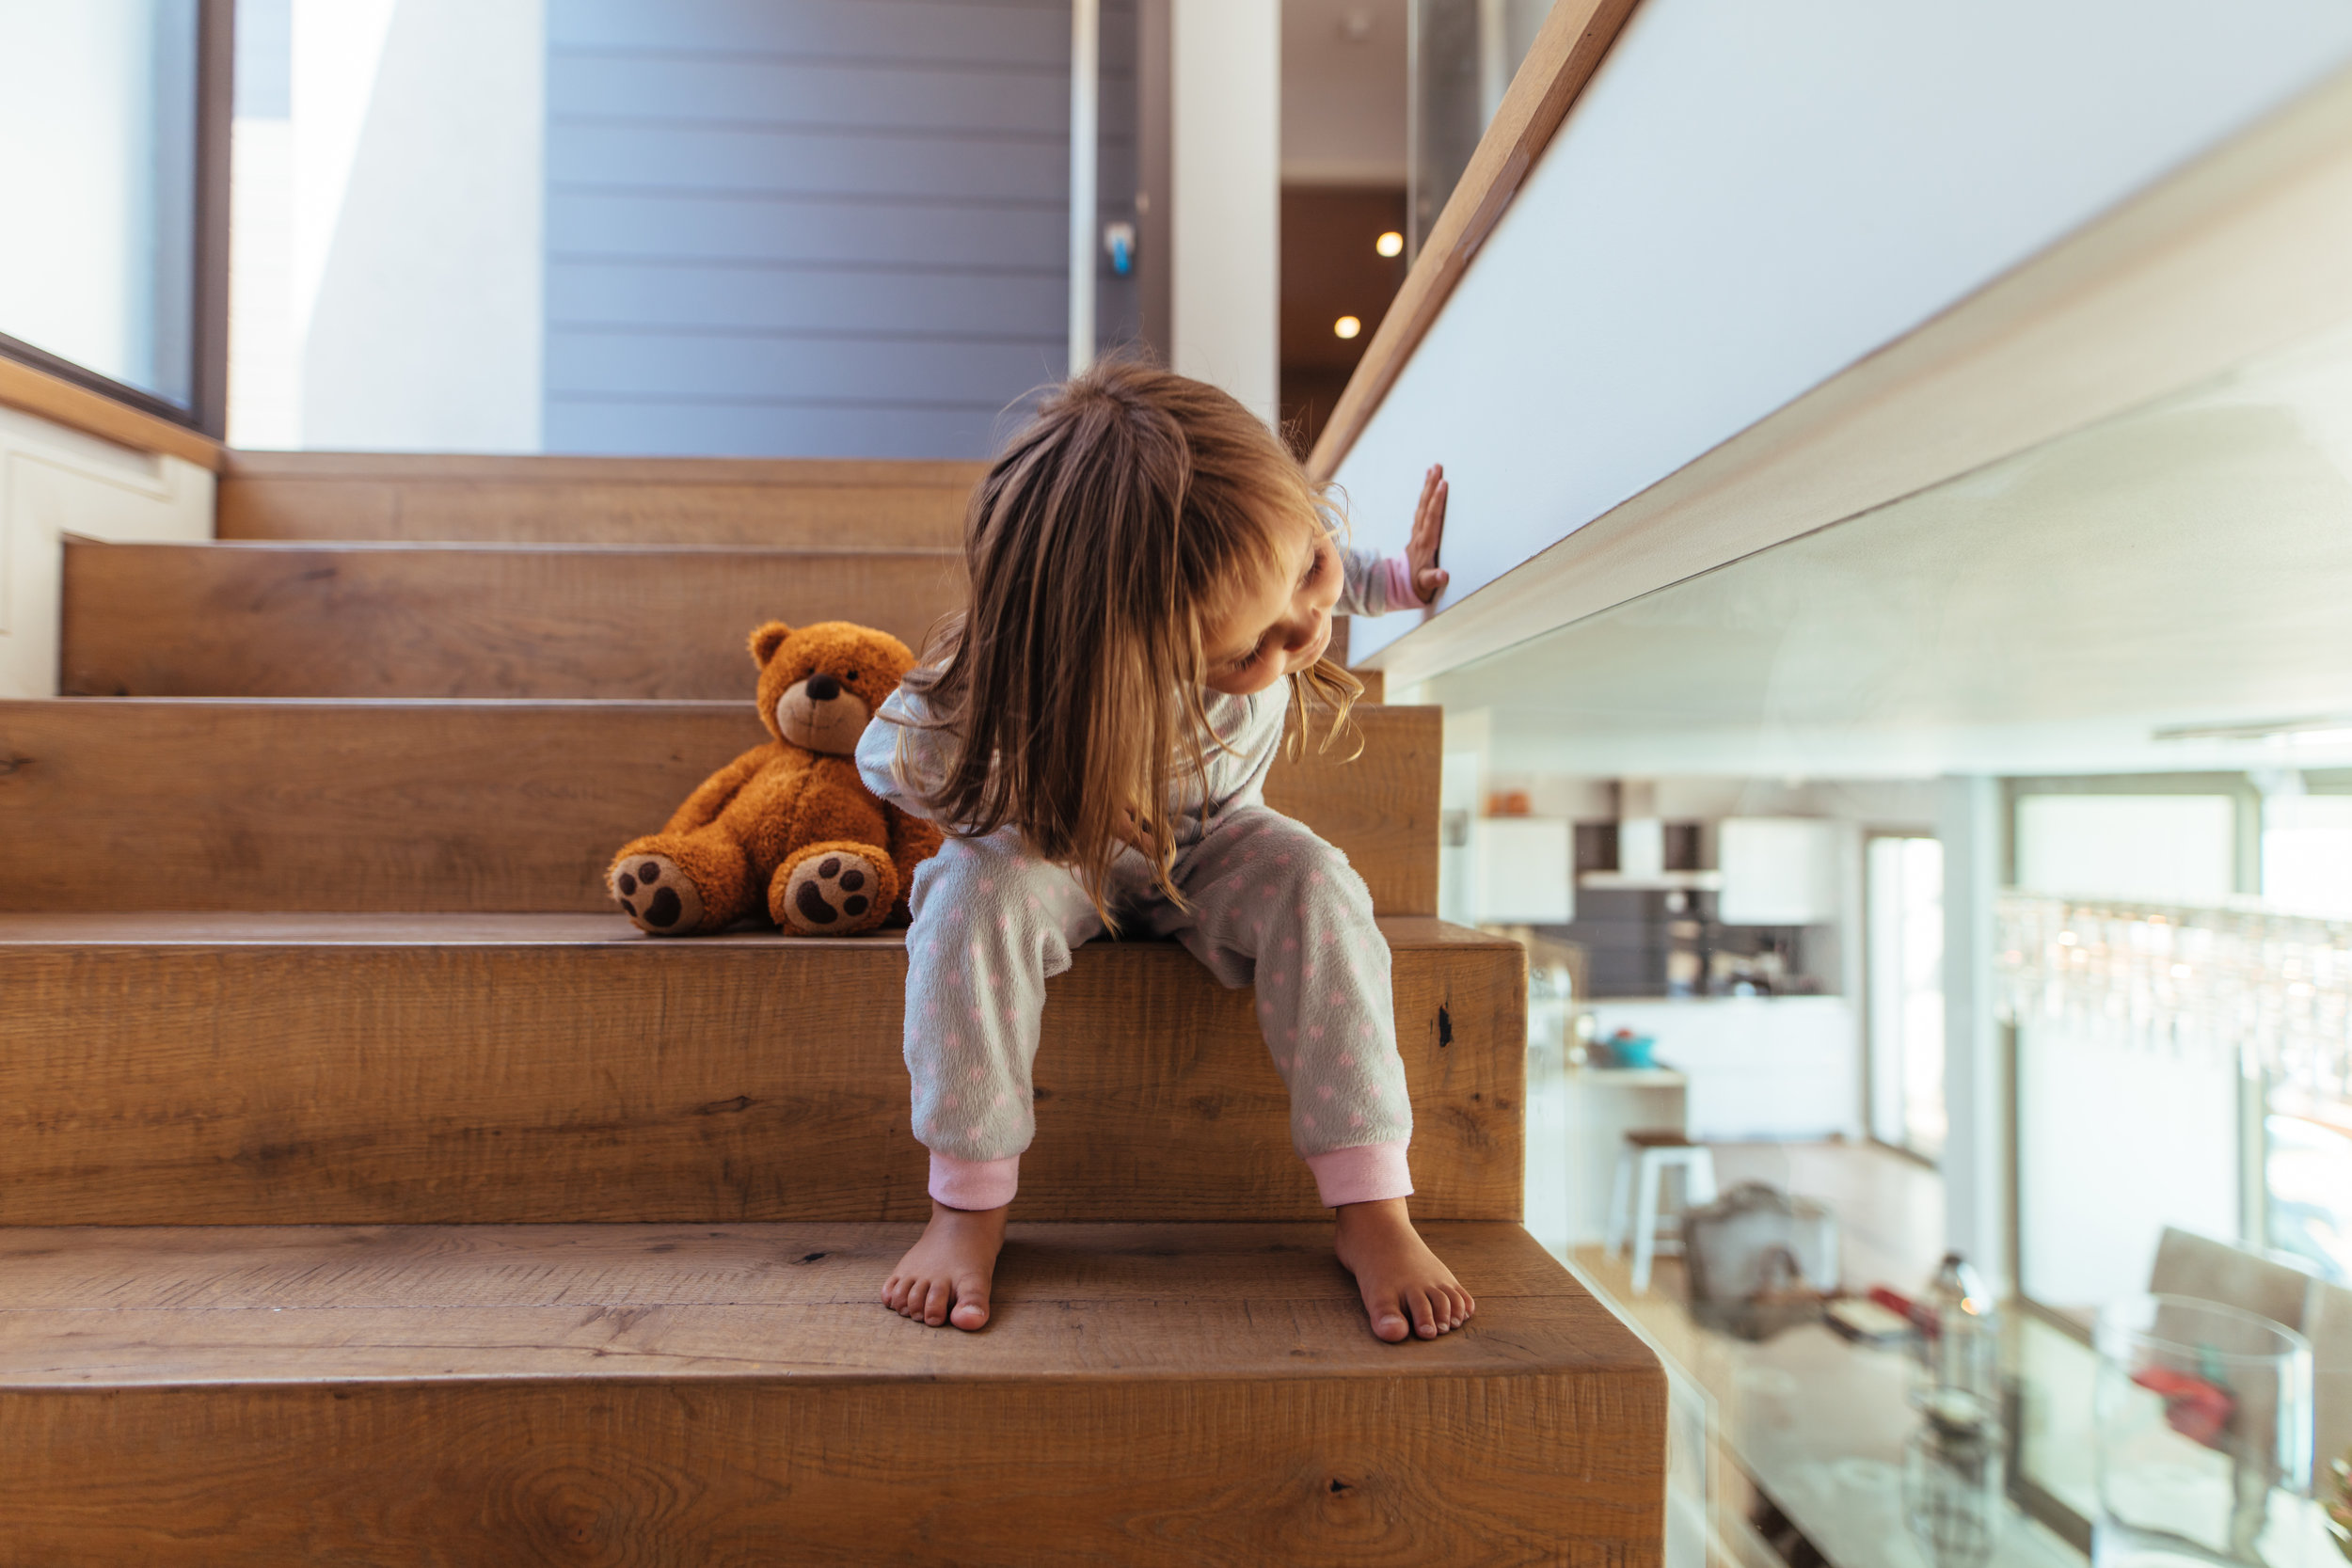 Little_girl_sitting_on_staircase_at_home.jpeg